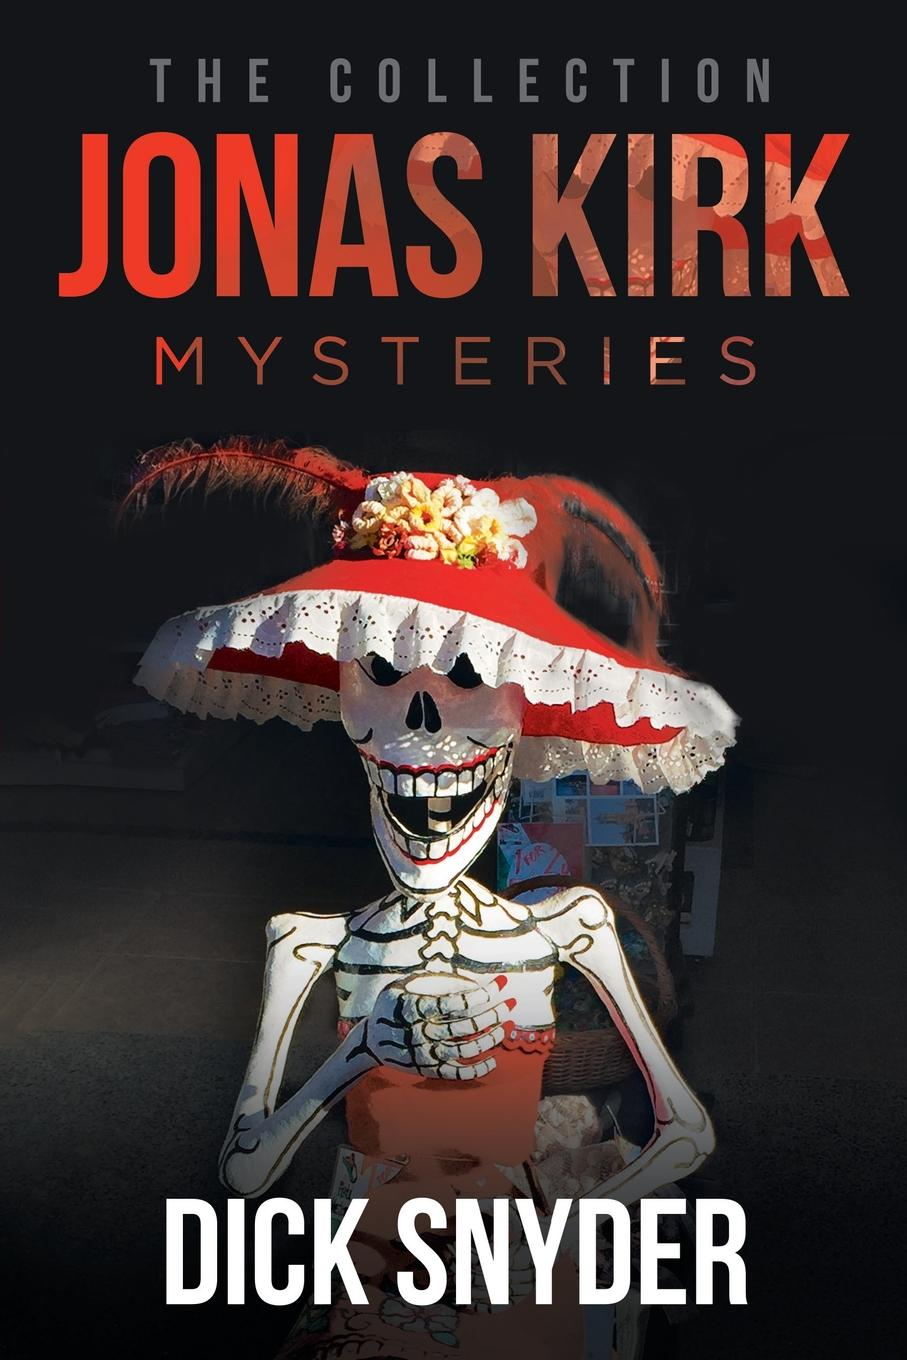 Dick Snyder Jonas Kirk Mysteries. The Collection richard kirk raven 5 a time of dying